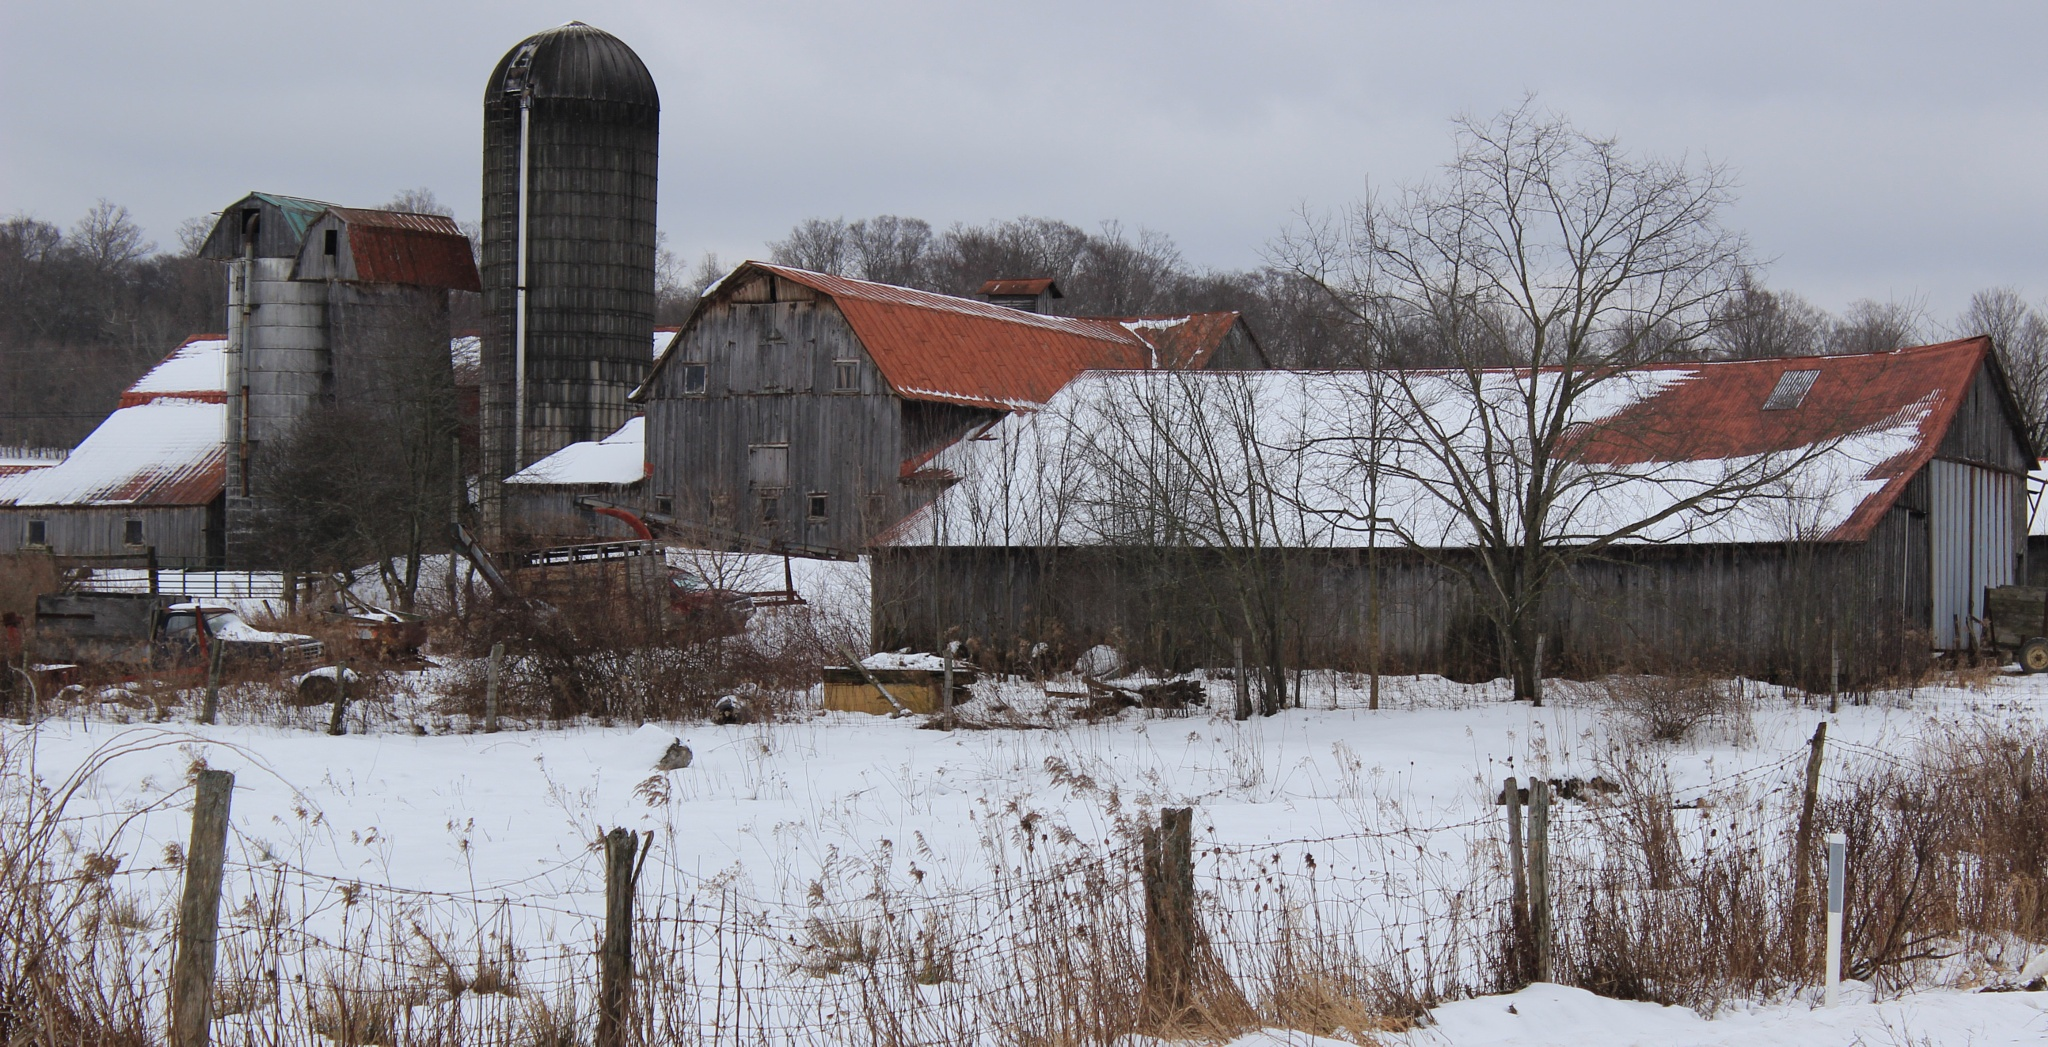 Old Farm by Auggie23